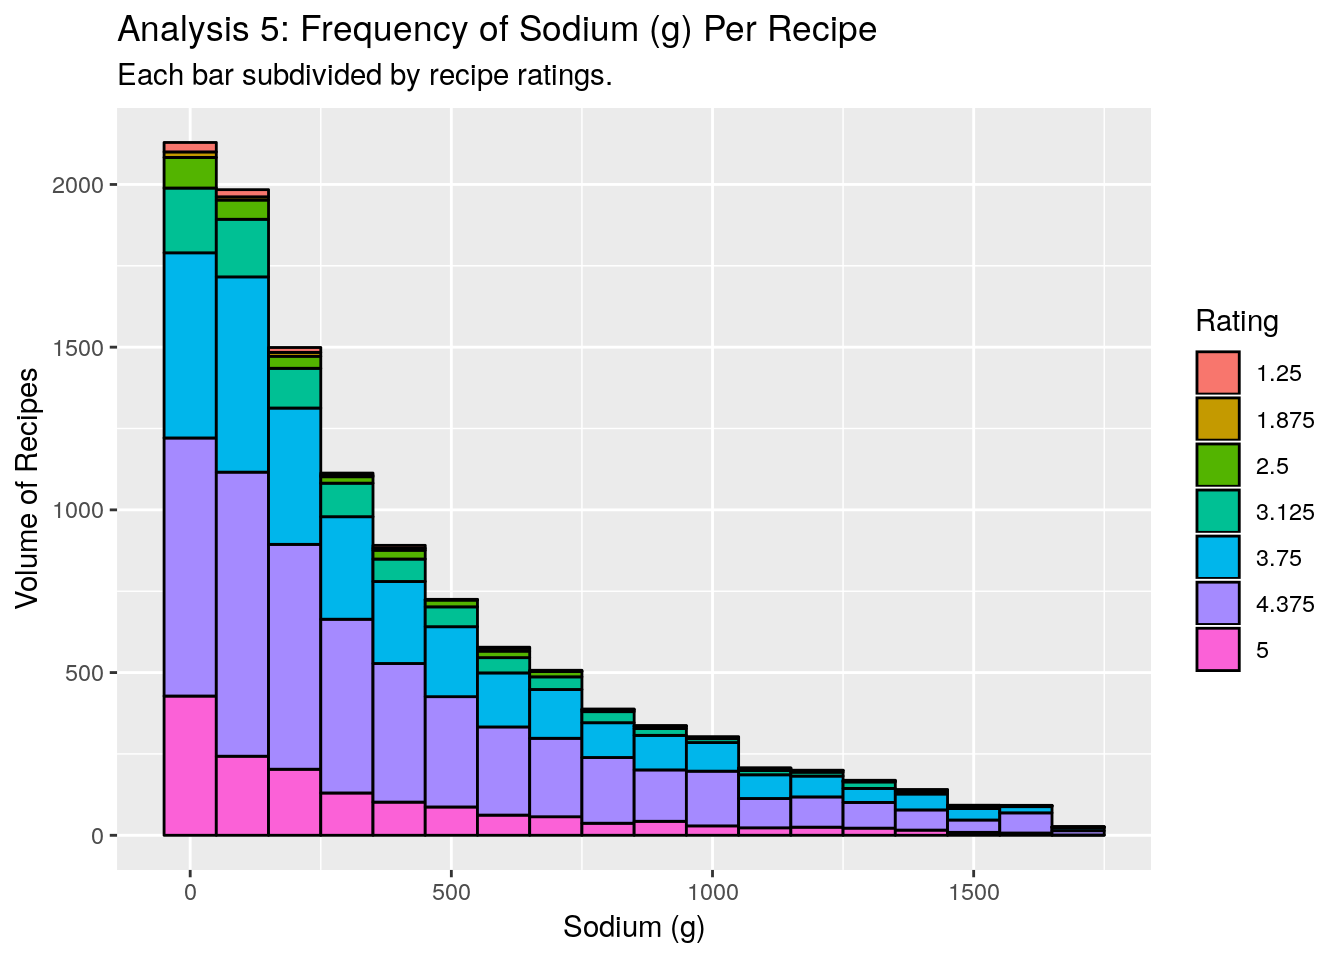 sodium-frequency-6.png